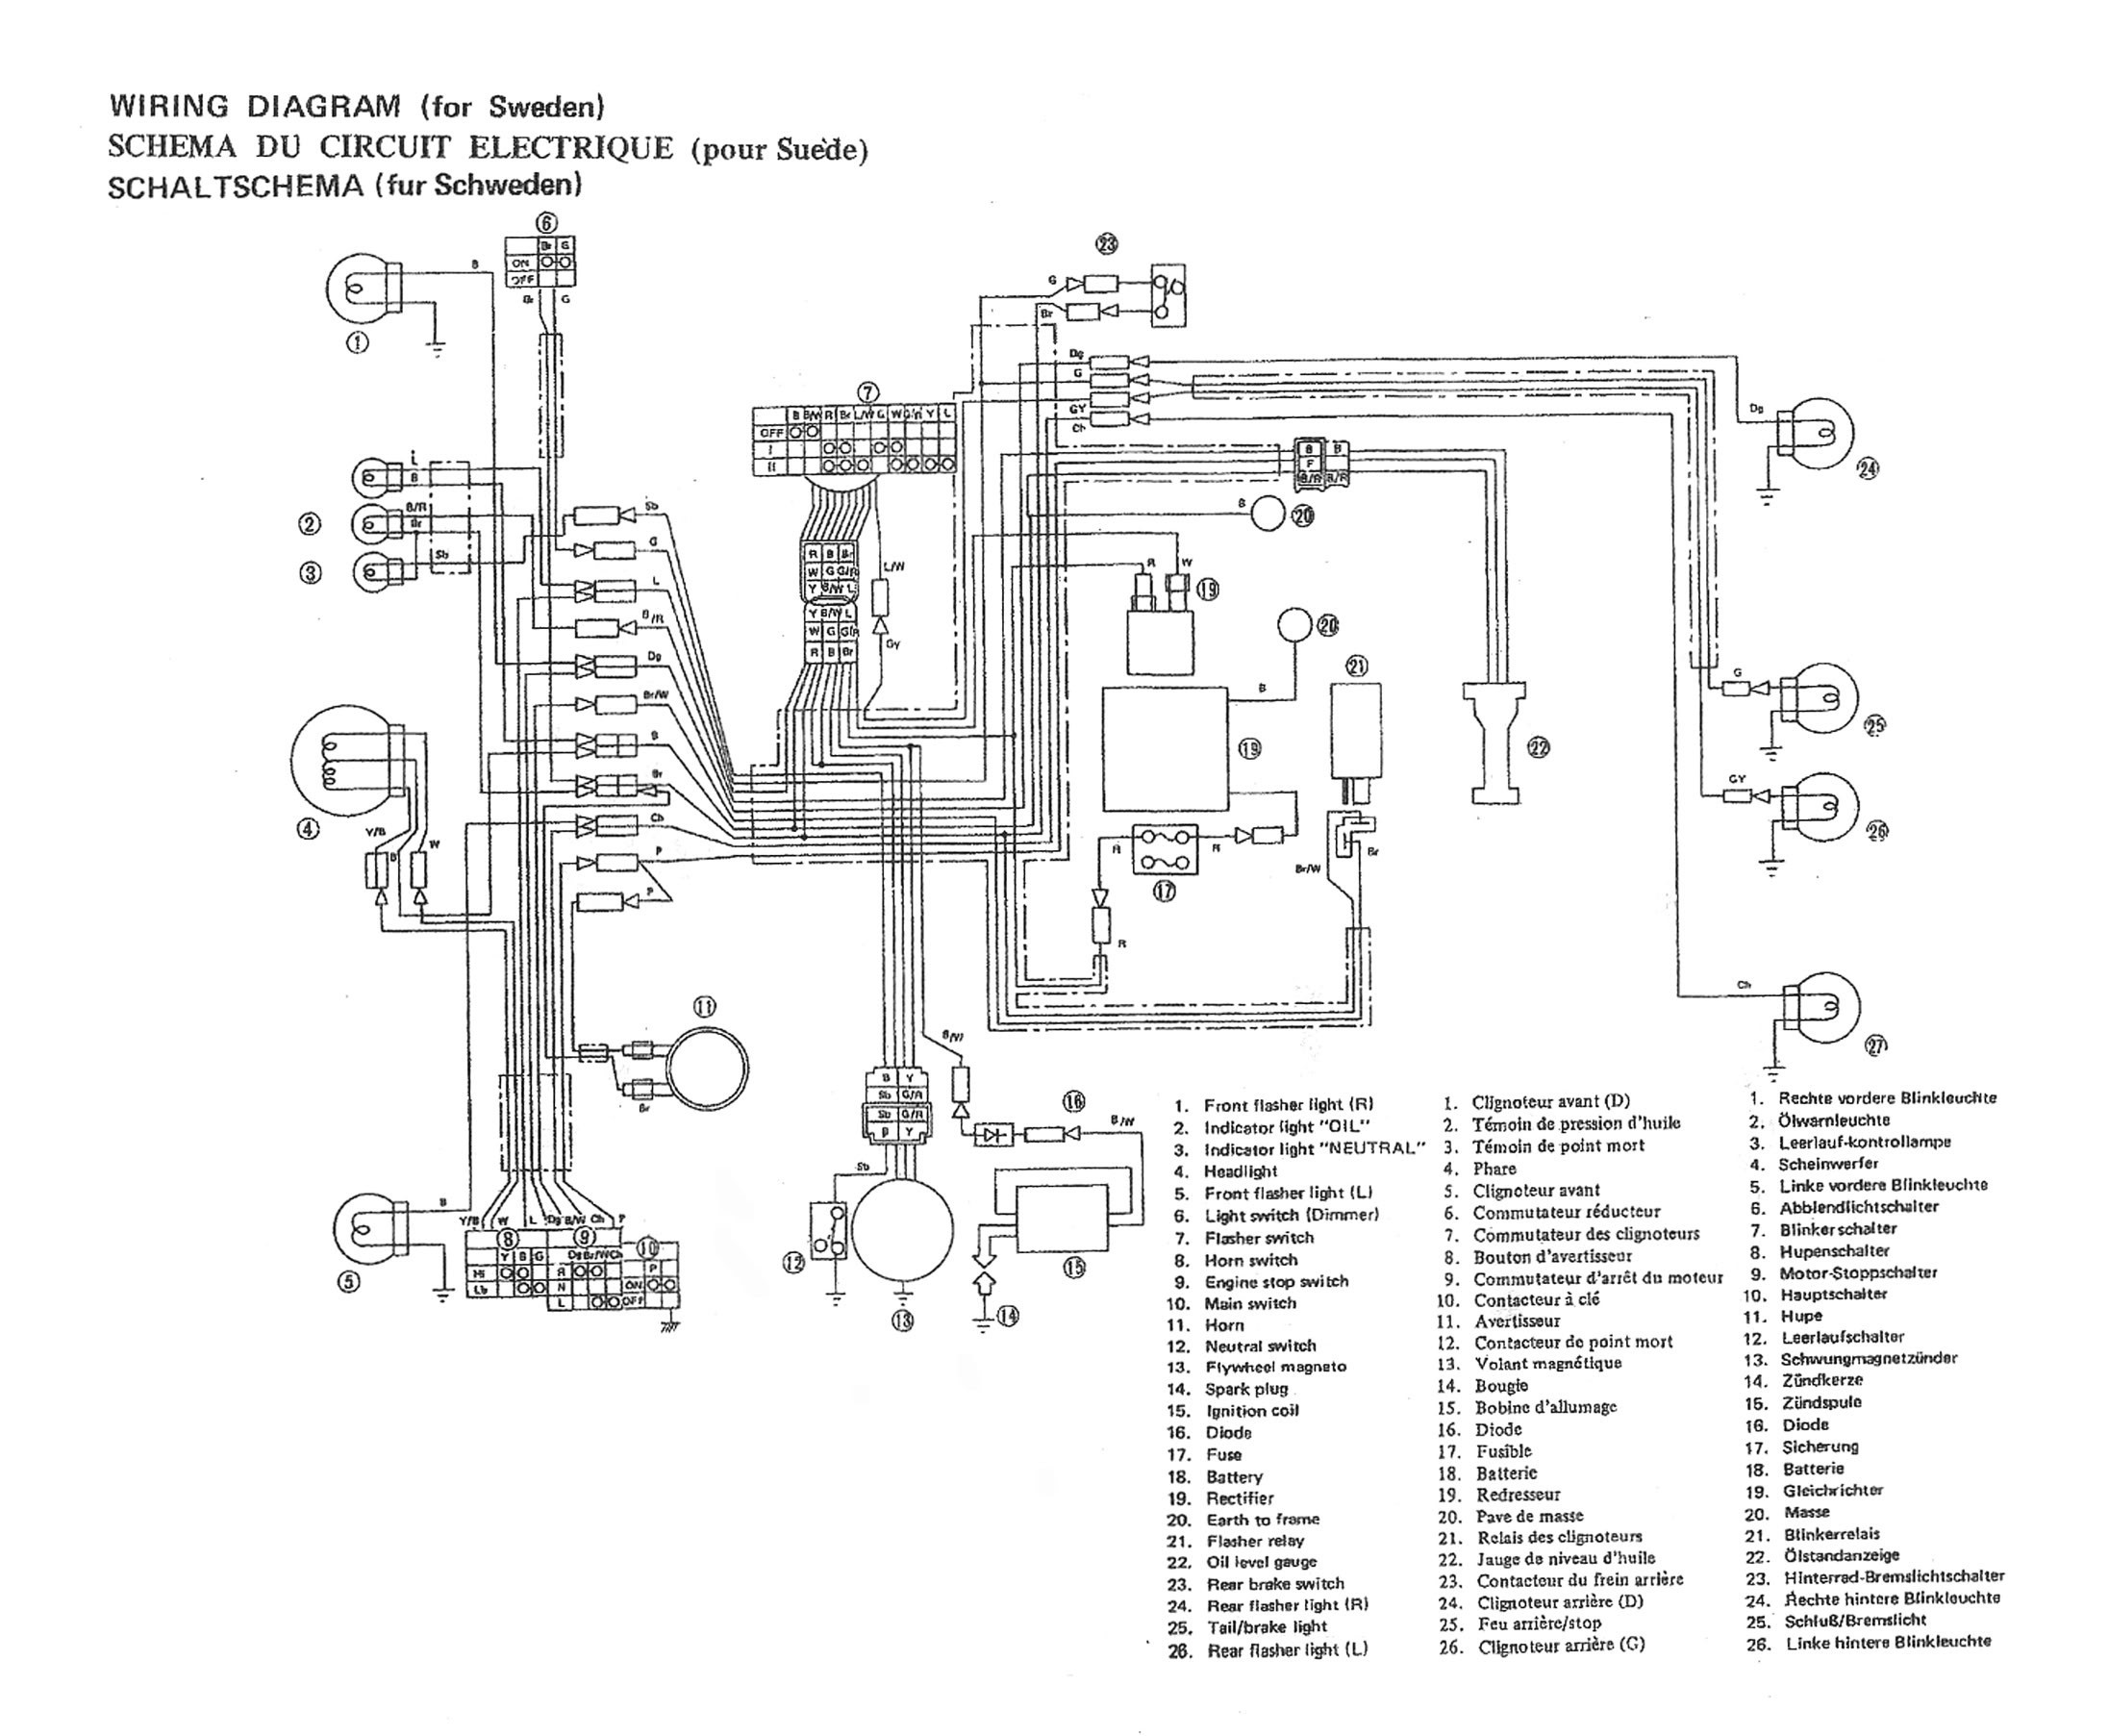 Honda Ruckus Wiring Diagram Inspirational Image Scooter Manual Refrence 50cc